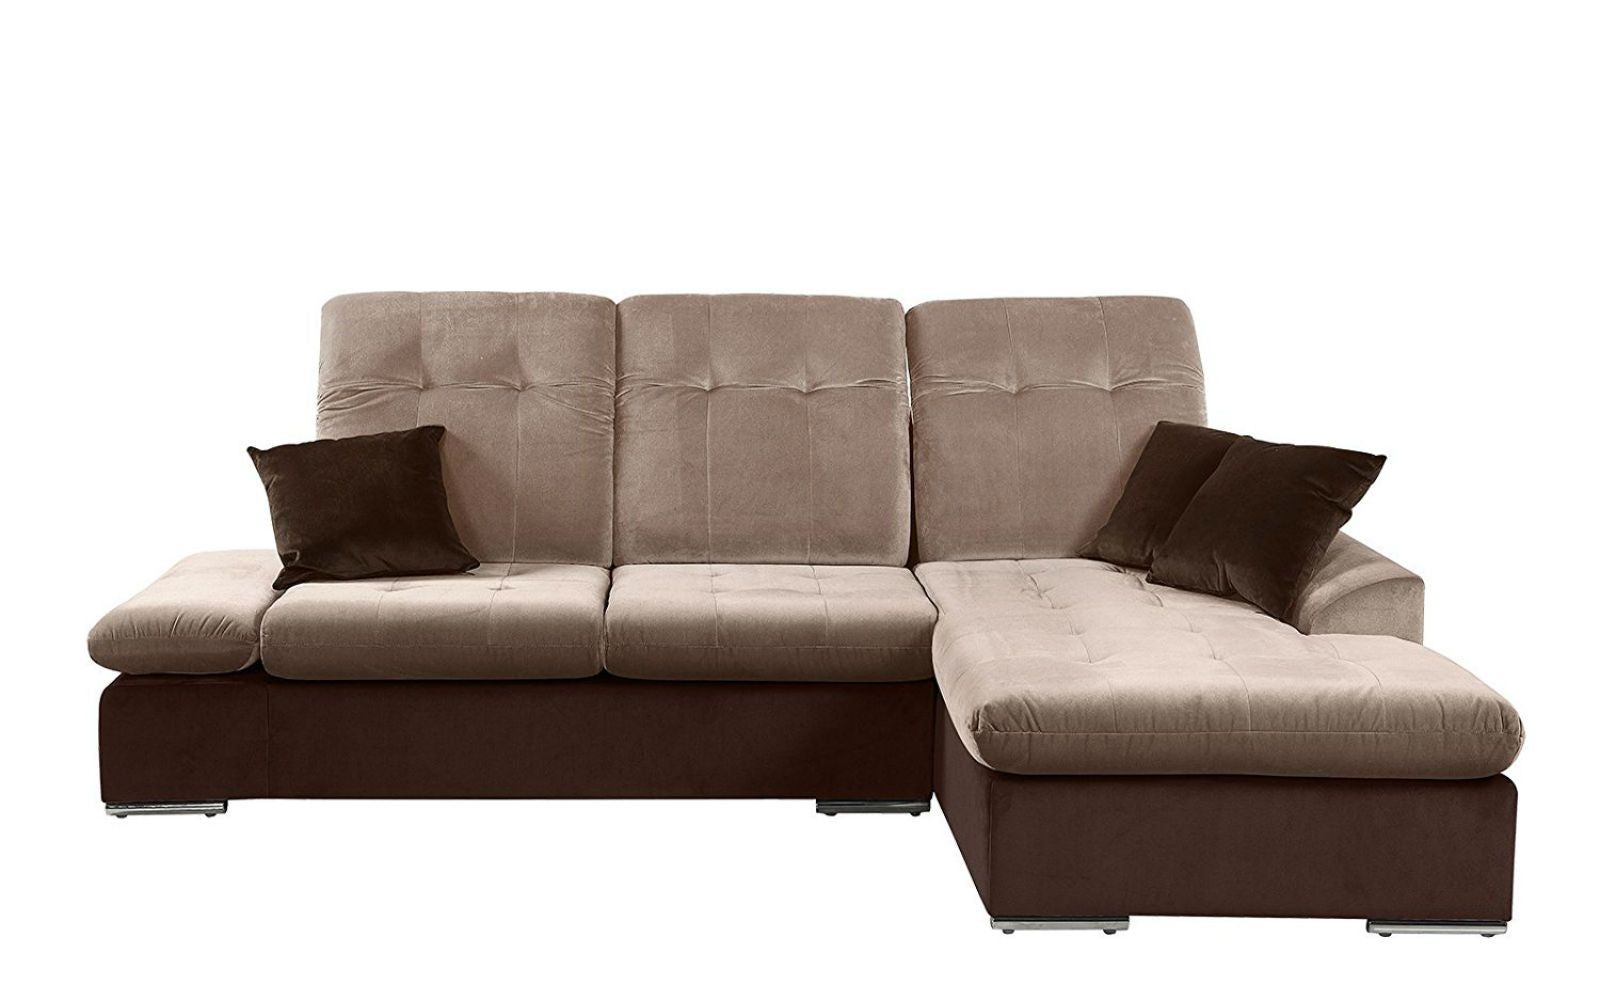 ... Concorde Microfiber Sectional Sofa With Chaise Hazel And Brown ...